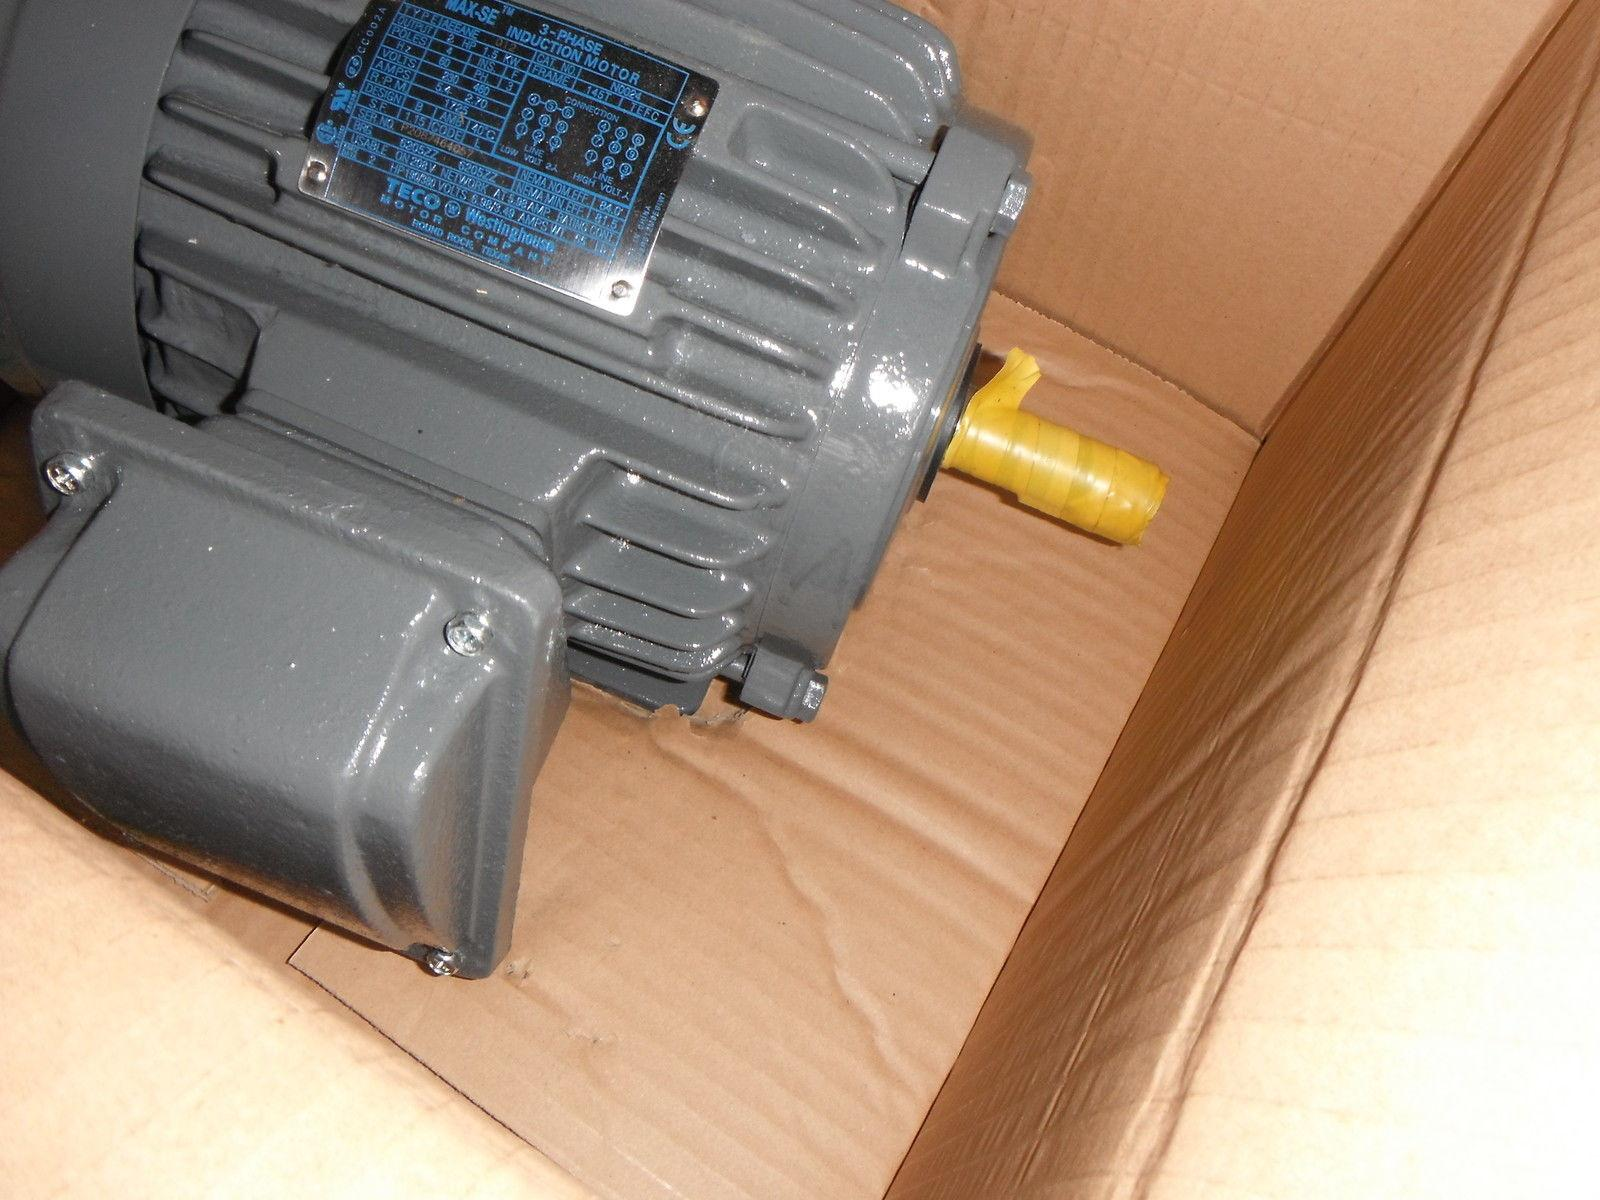 Teco n0024 2 hp 3 phase induction electric motor 247 ebay for 1 2 hp induction motor